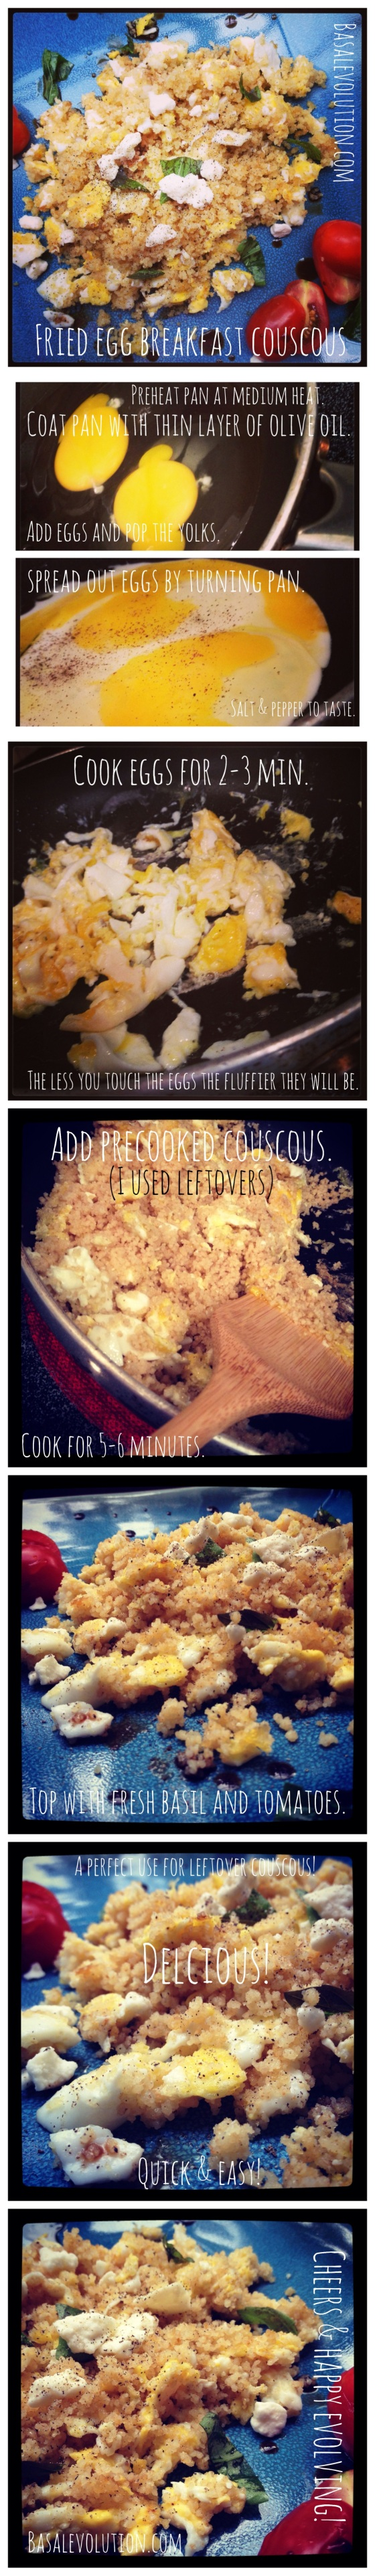 fried egg breakfast couscous